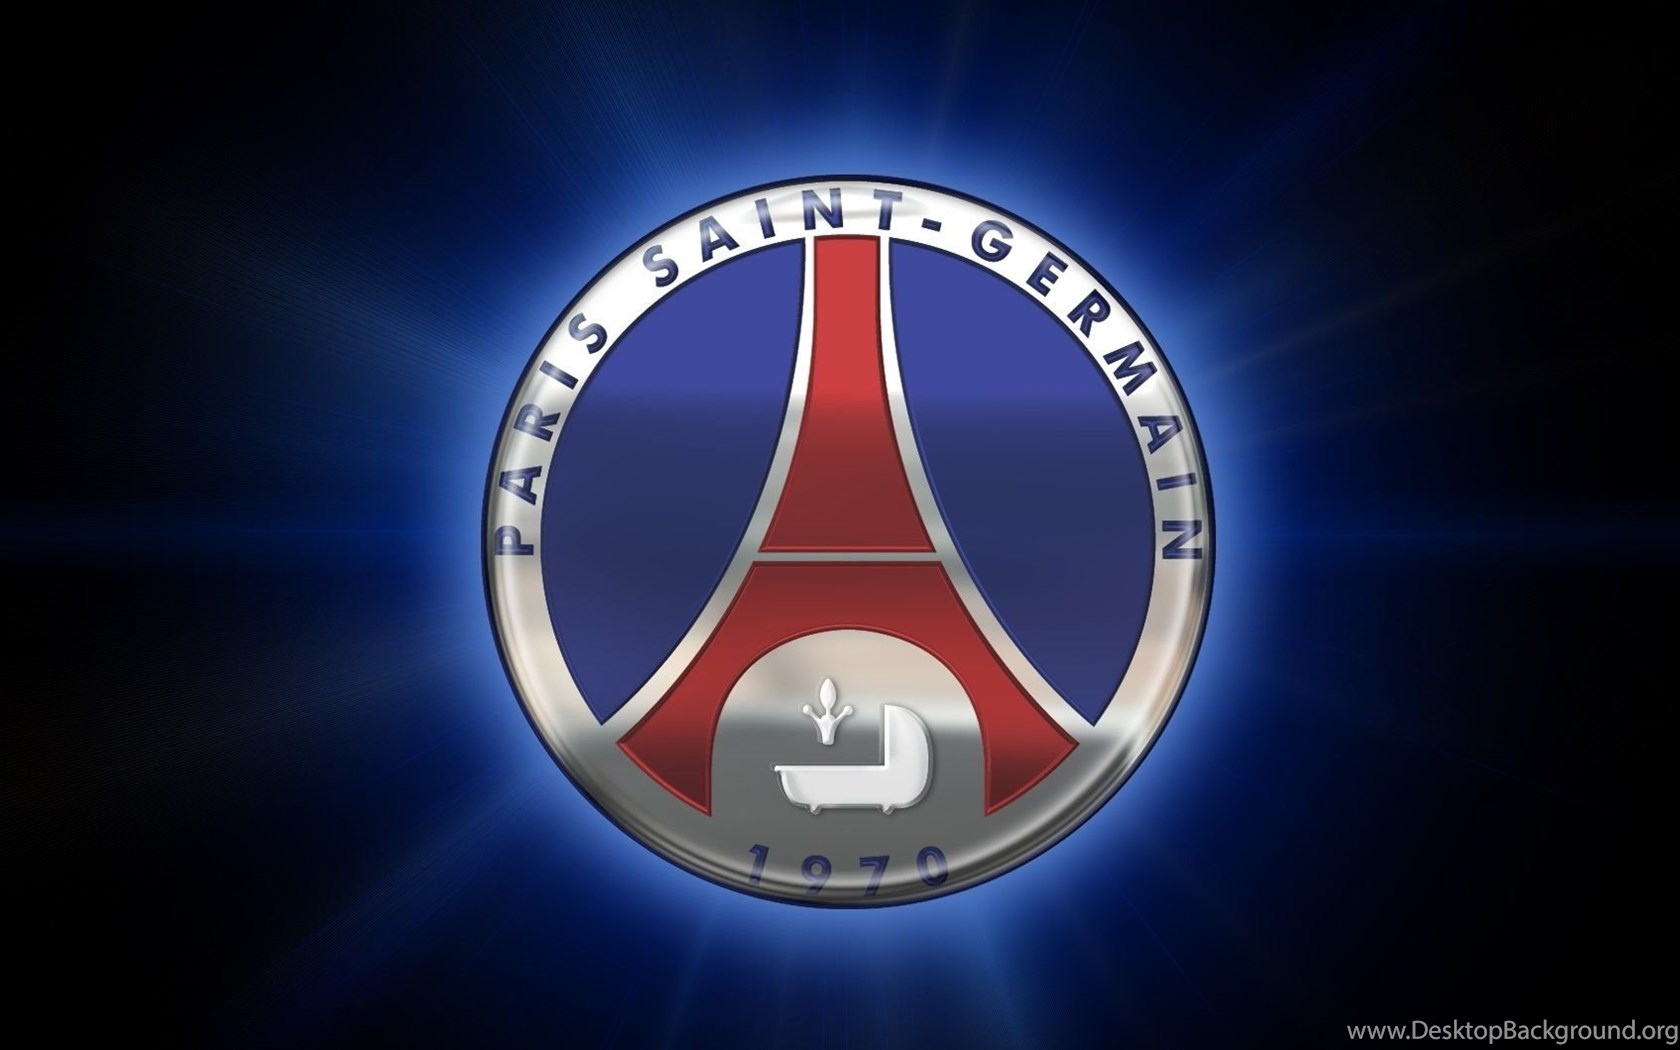 Full Hd Paris Saint Germain Wallpapers Desktop Background